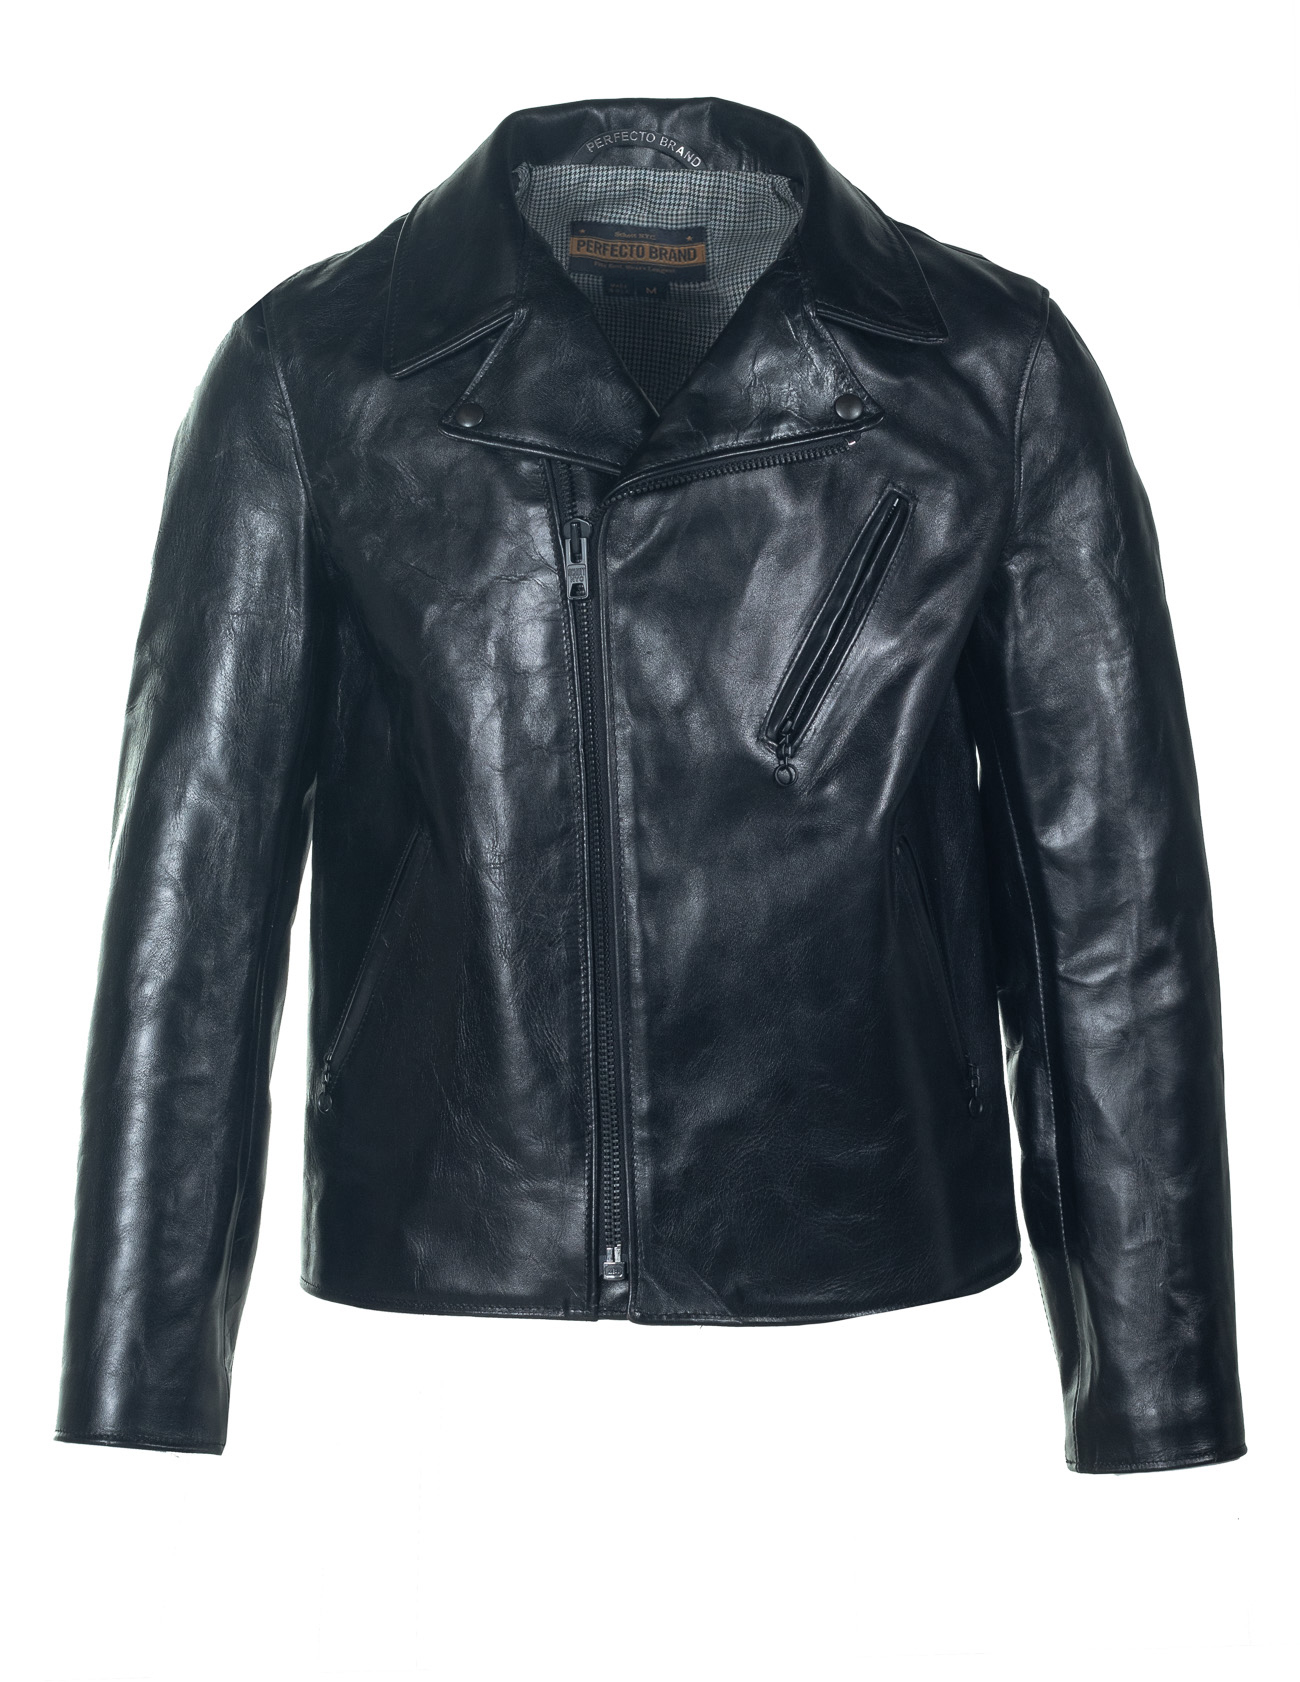 Schott N.Y.C. P623H Horween Horsehide Clean Perfecto® Leather Jacket